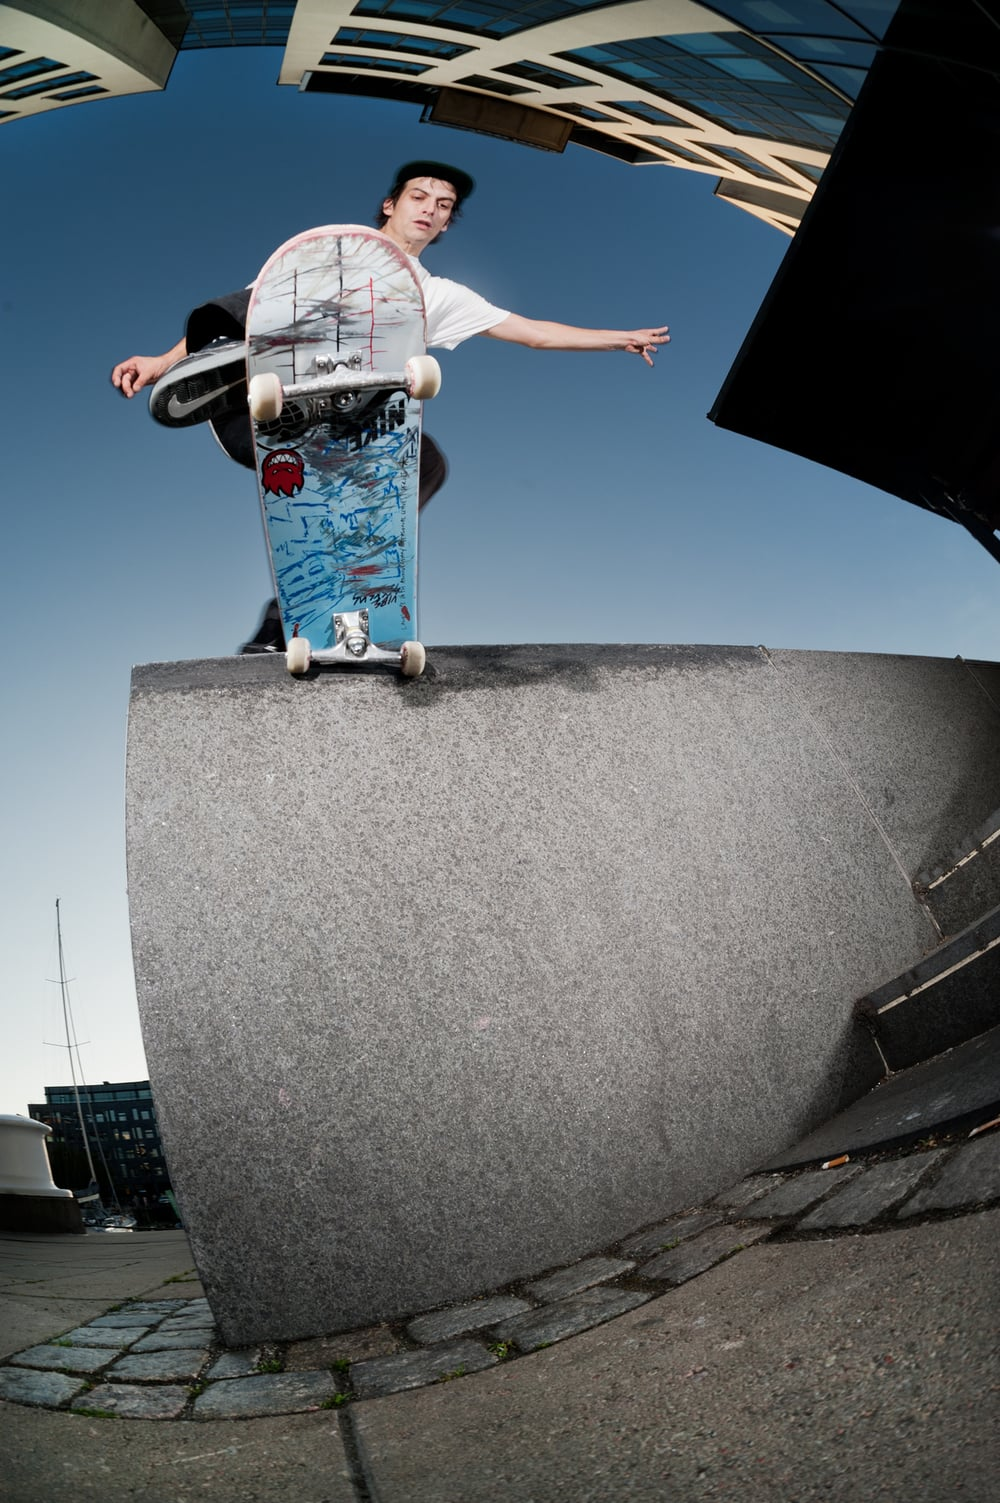 JOE_GAVIN_SWITCH_BACKSIDE_TAILSLIDE_SHOVE_MALMO_WIP_FINAL.jpg